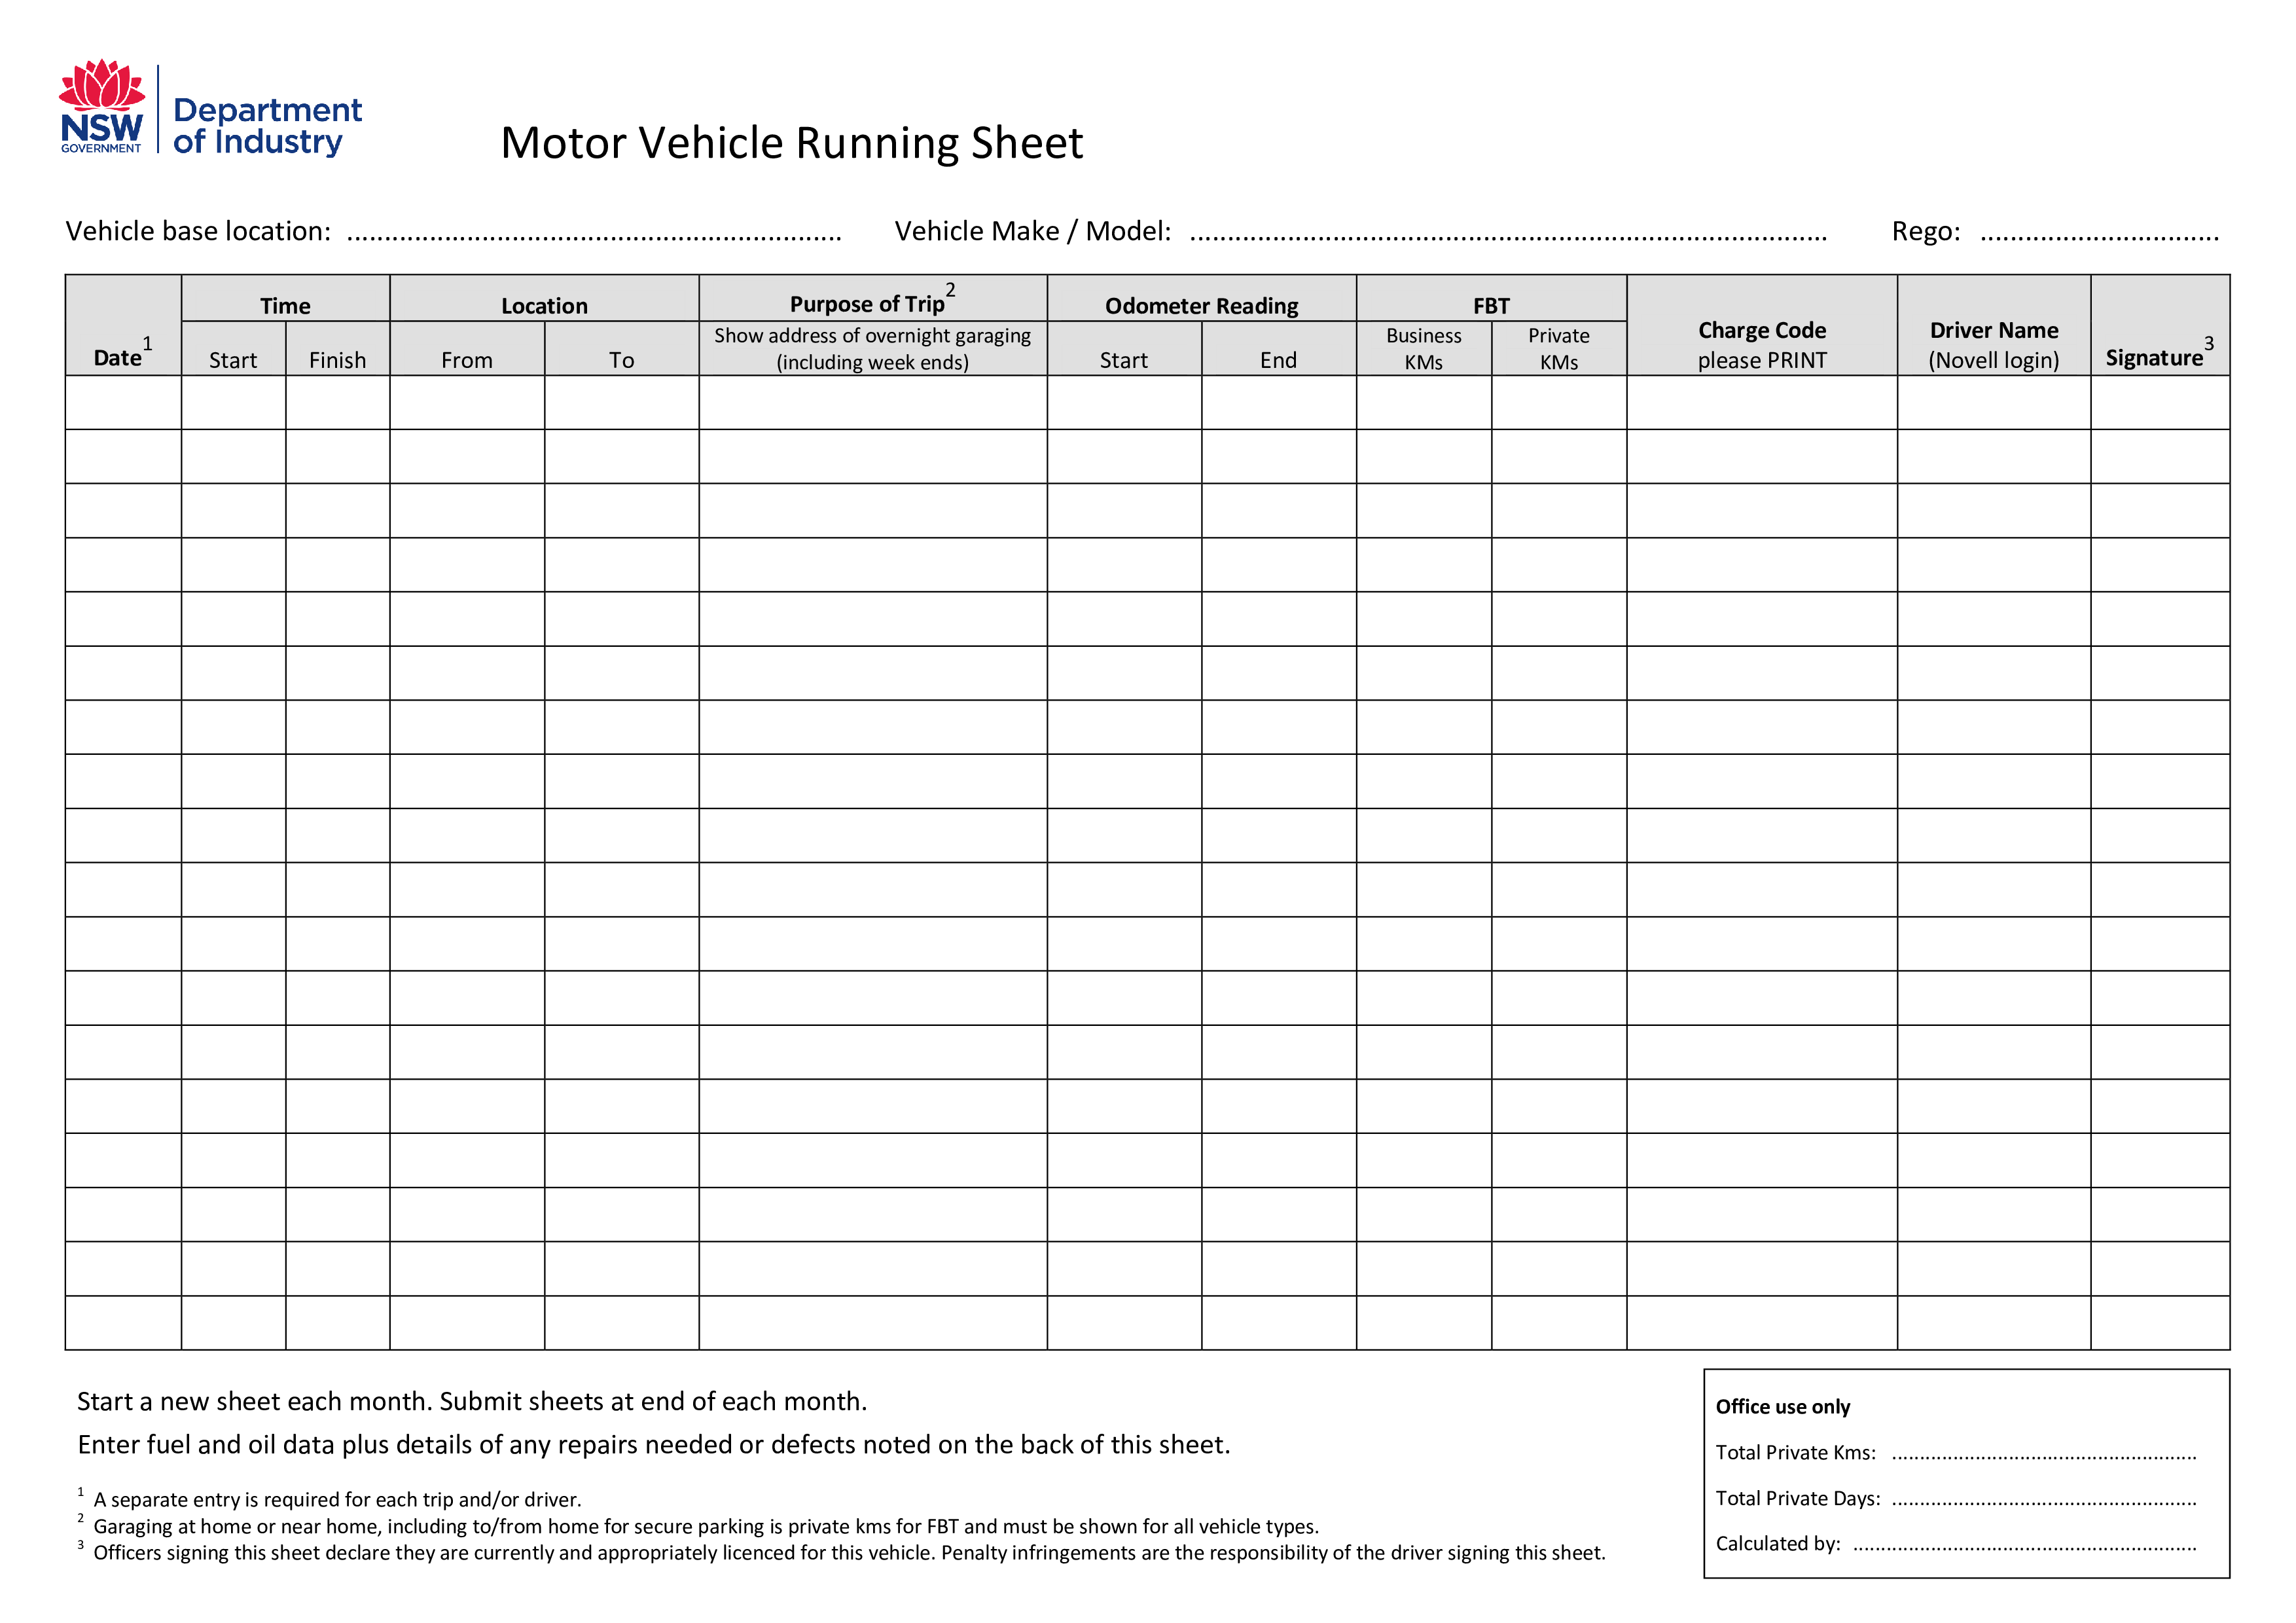 Running Sheet Motor Vehicle Running Sheet Pdf Easy To Download And Use Pdf Technology Template Templates Motor Car Vehicles